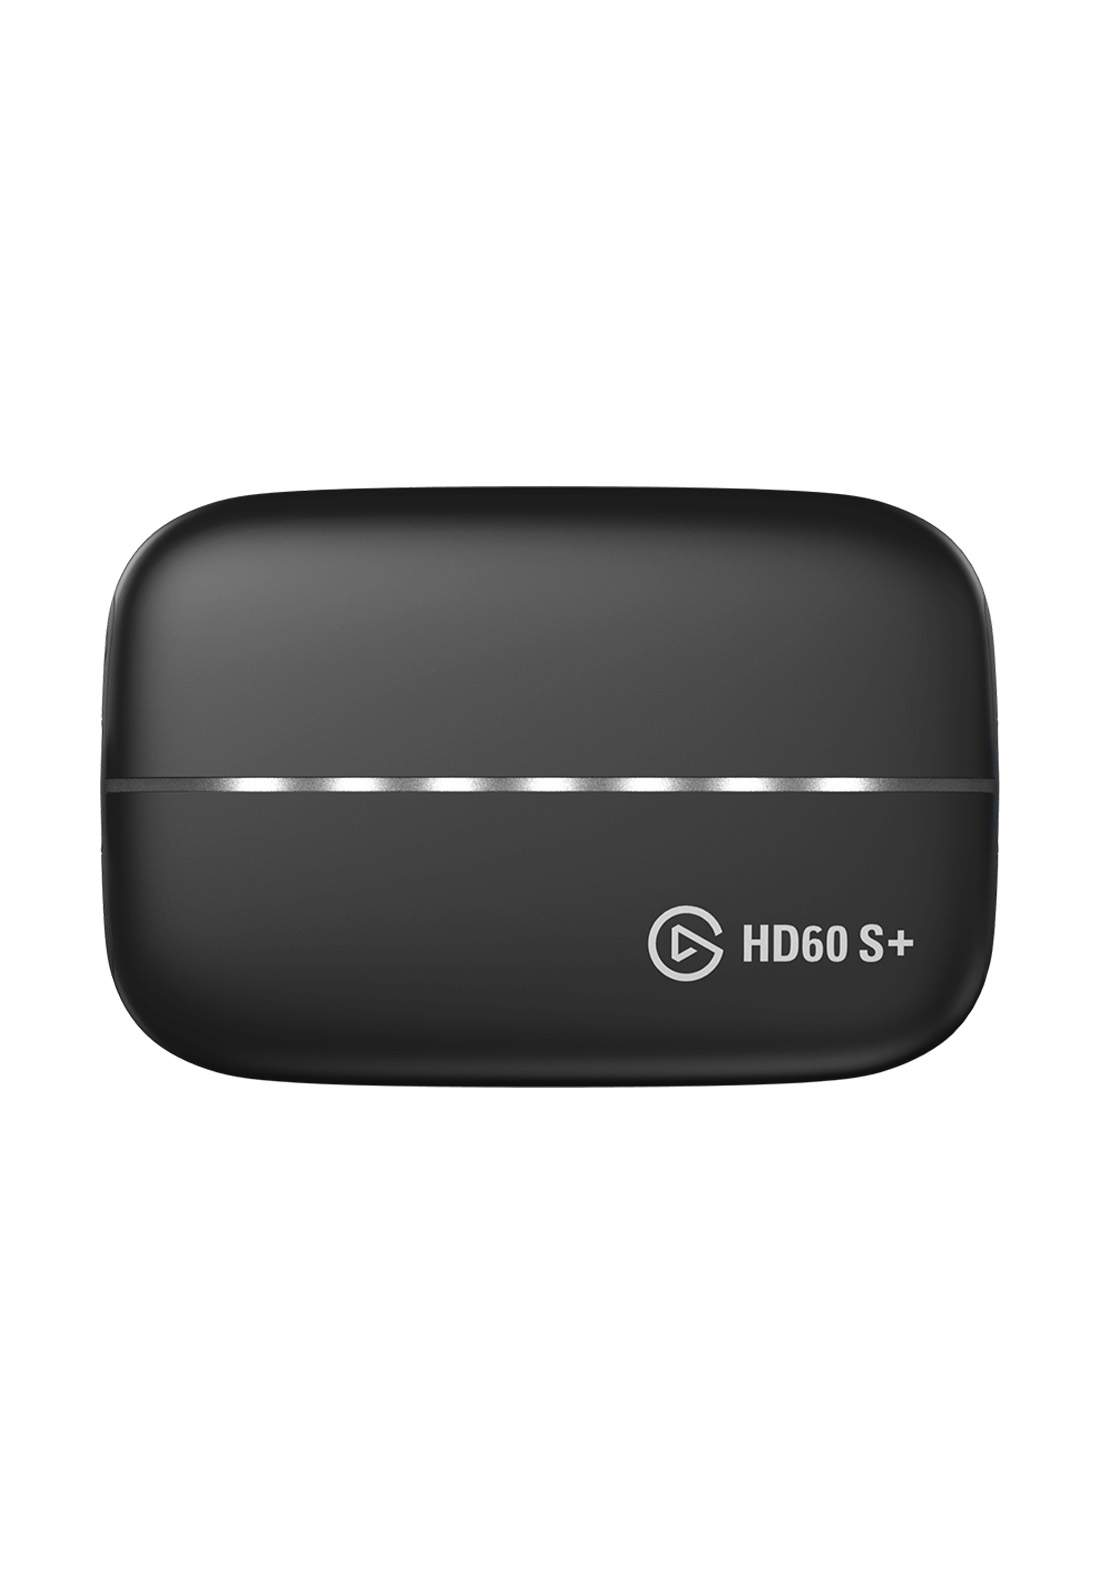 ElgatoGame Capture HD60 S Plus Capture Card for Recording in 1080p60 HDR10 - Black